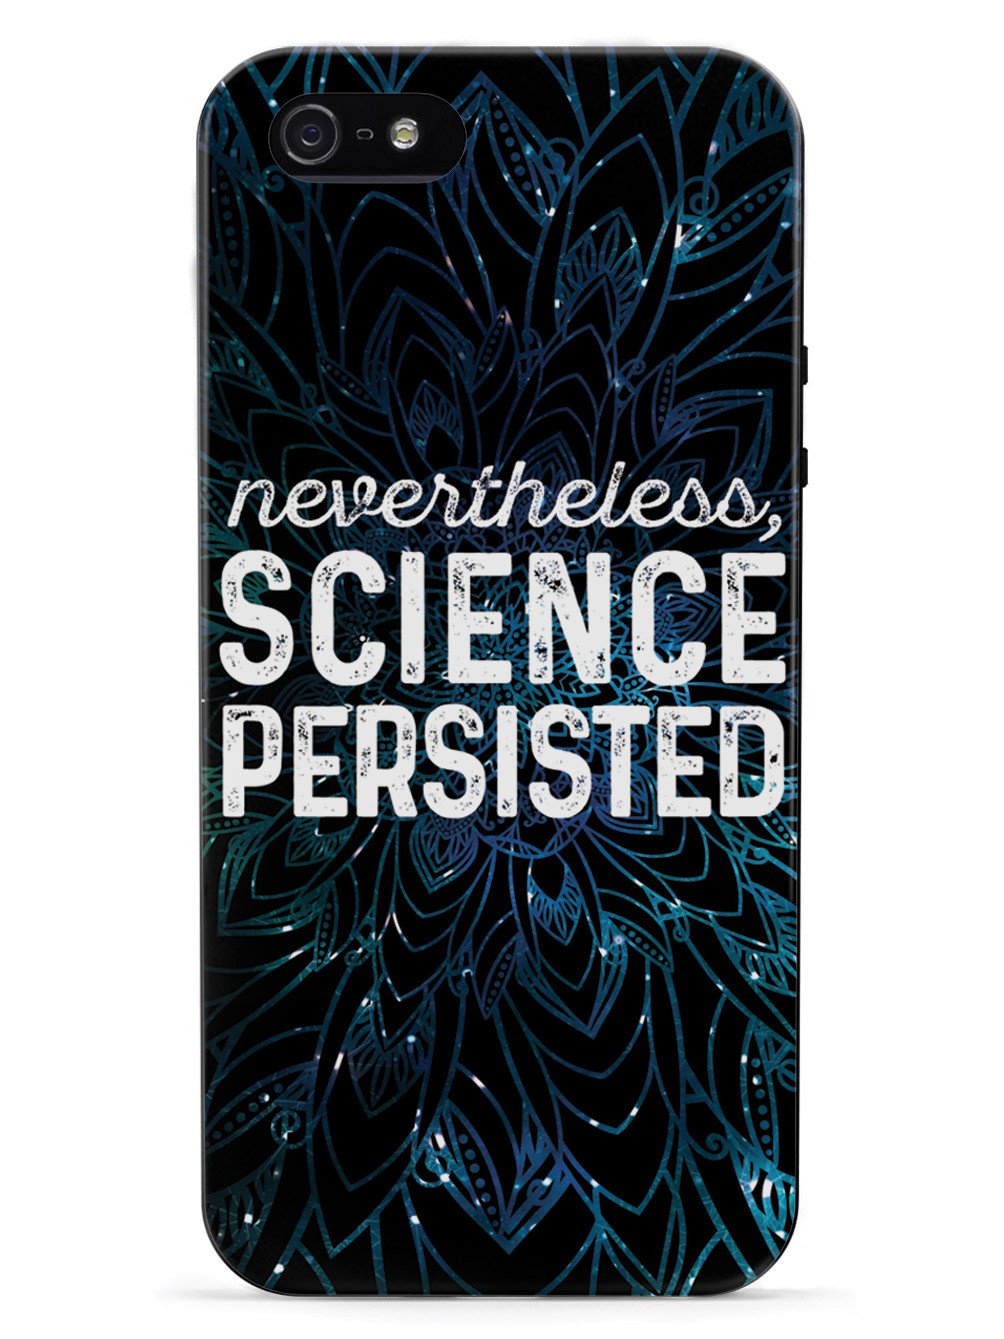 Nevertheless, Science Persisted - Black Case - pipercleo.com